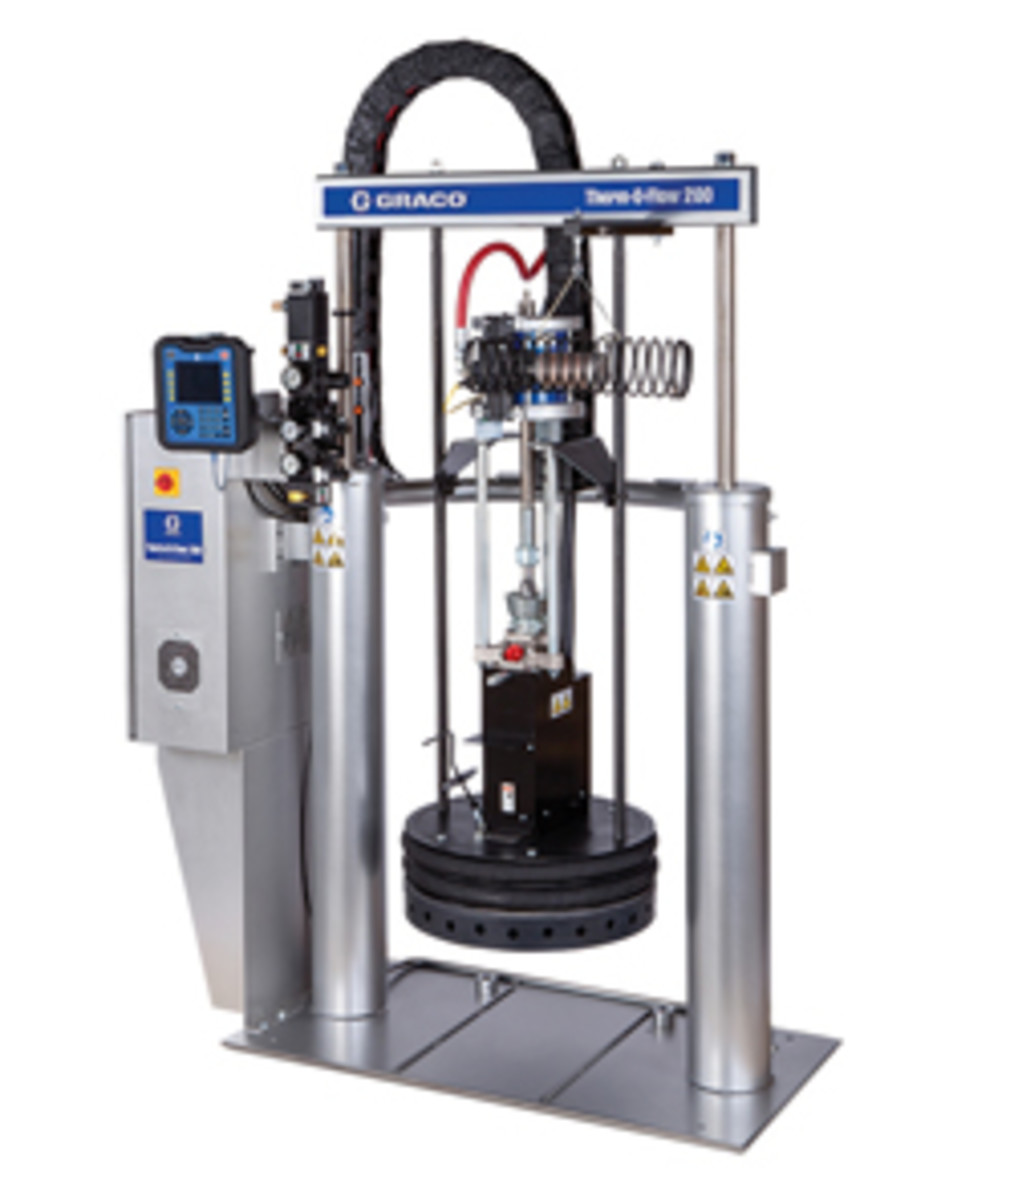 In the market for an industrial bulk hot melt glue system? Graco's Therm-O-Flow 200 applies sealants and adhesives from 55-gallon drums.